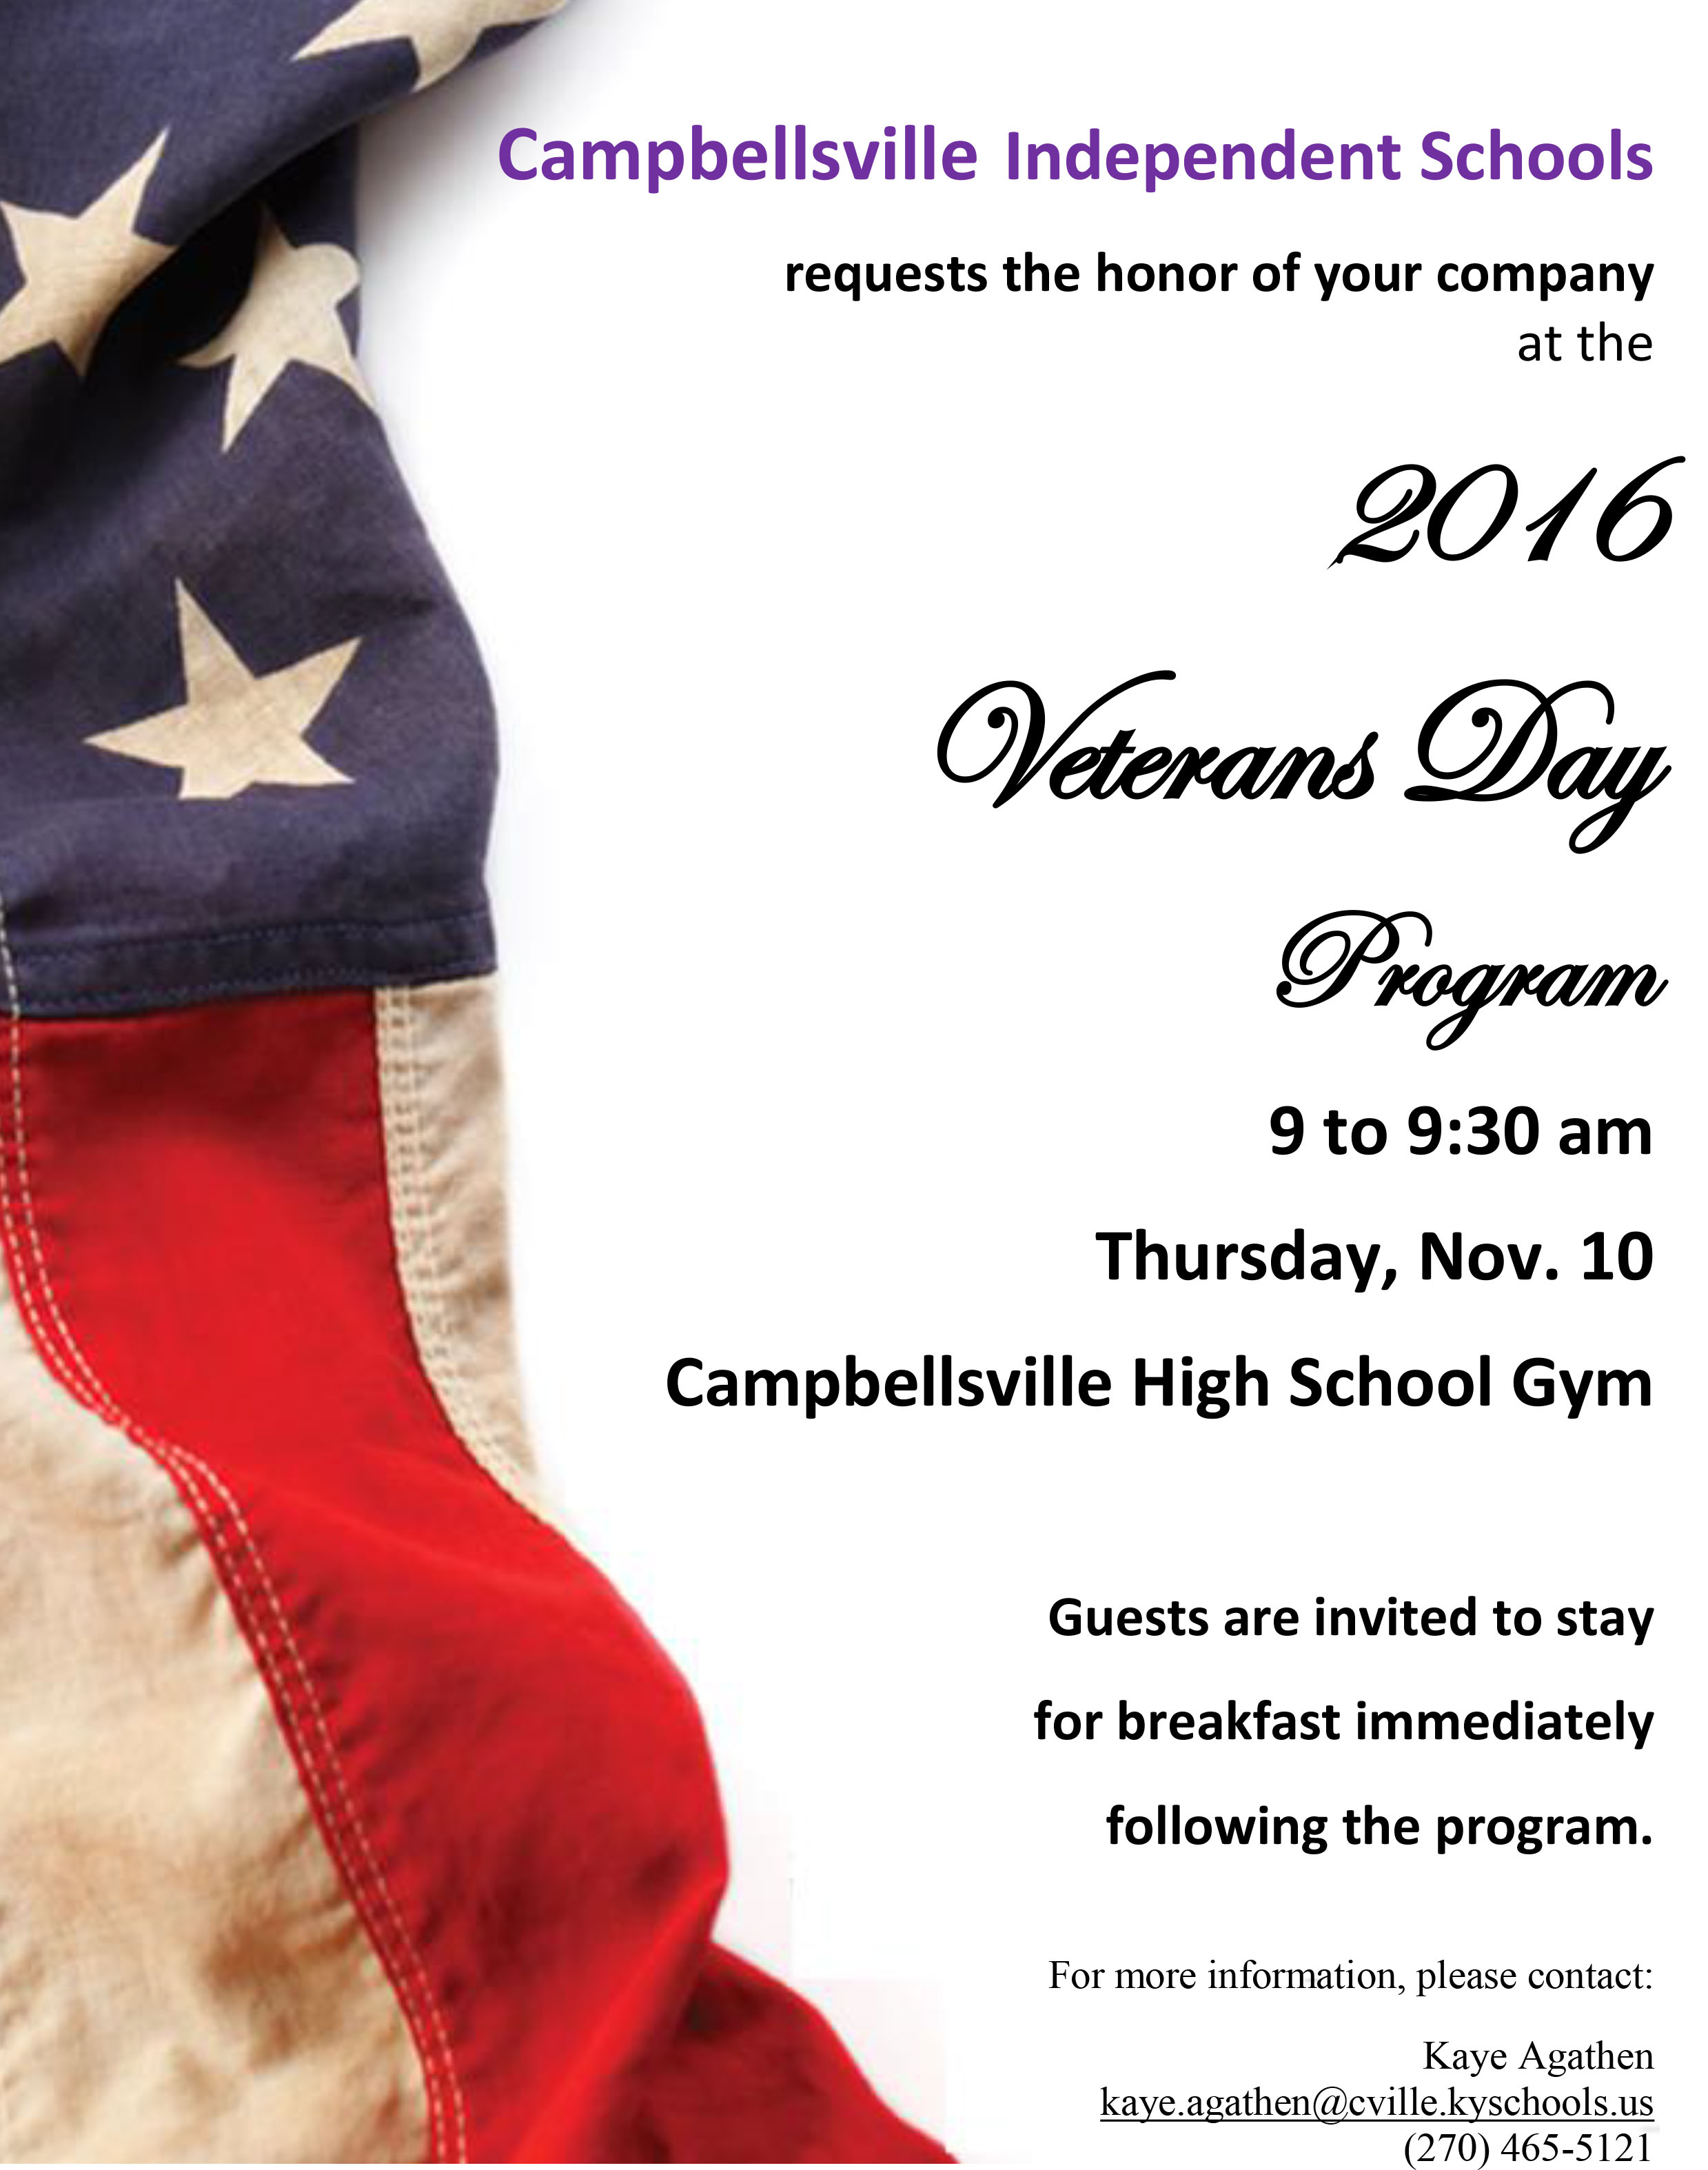 Campbellsville Independent Schools will host a Veterans Day program for local veterans and community members.  The ceremony will be on Thursday, Nov. 10, from 9 to 9:30 a.m. in the Campbellsville High School gym.